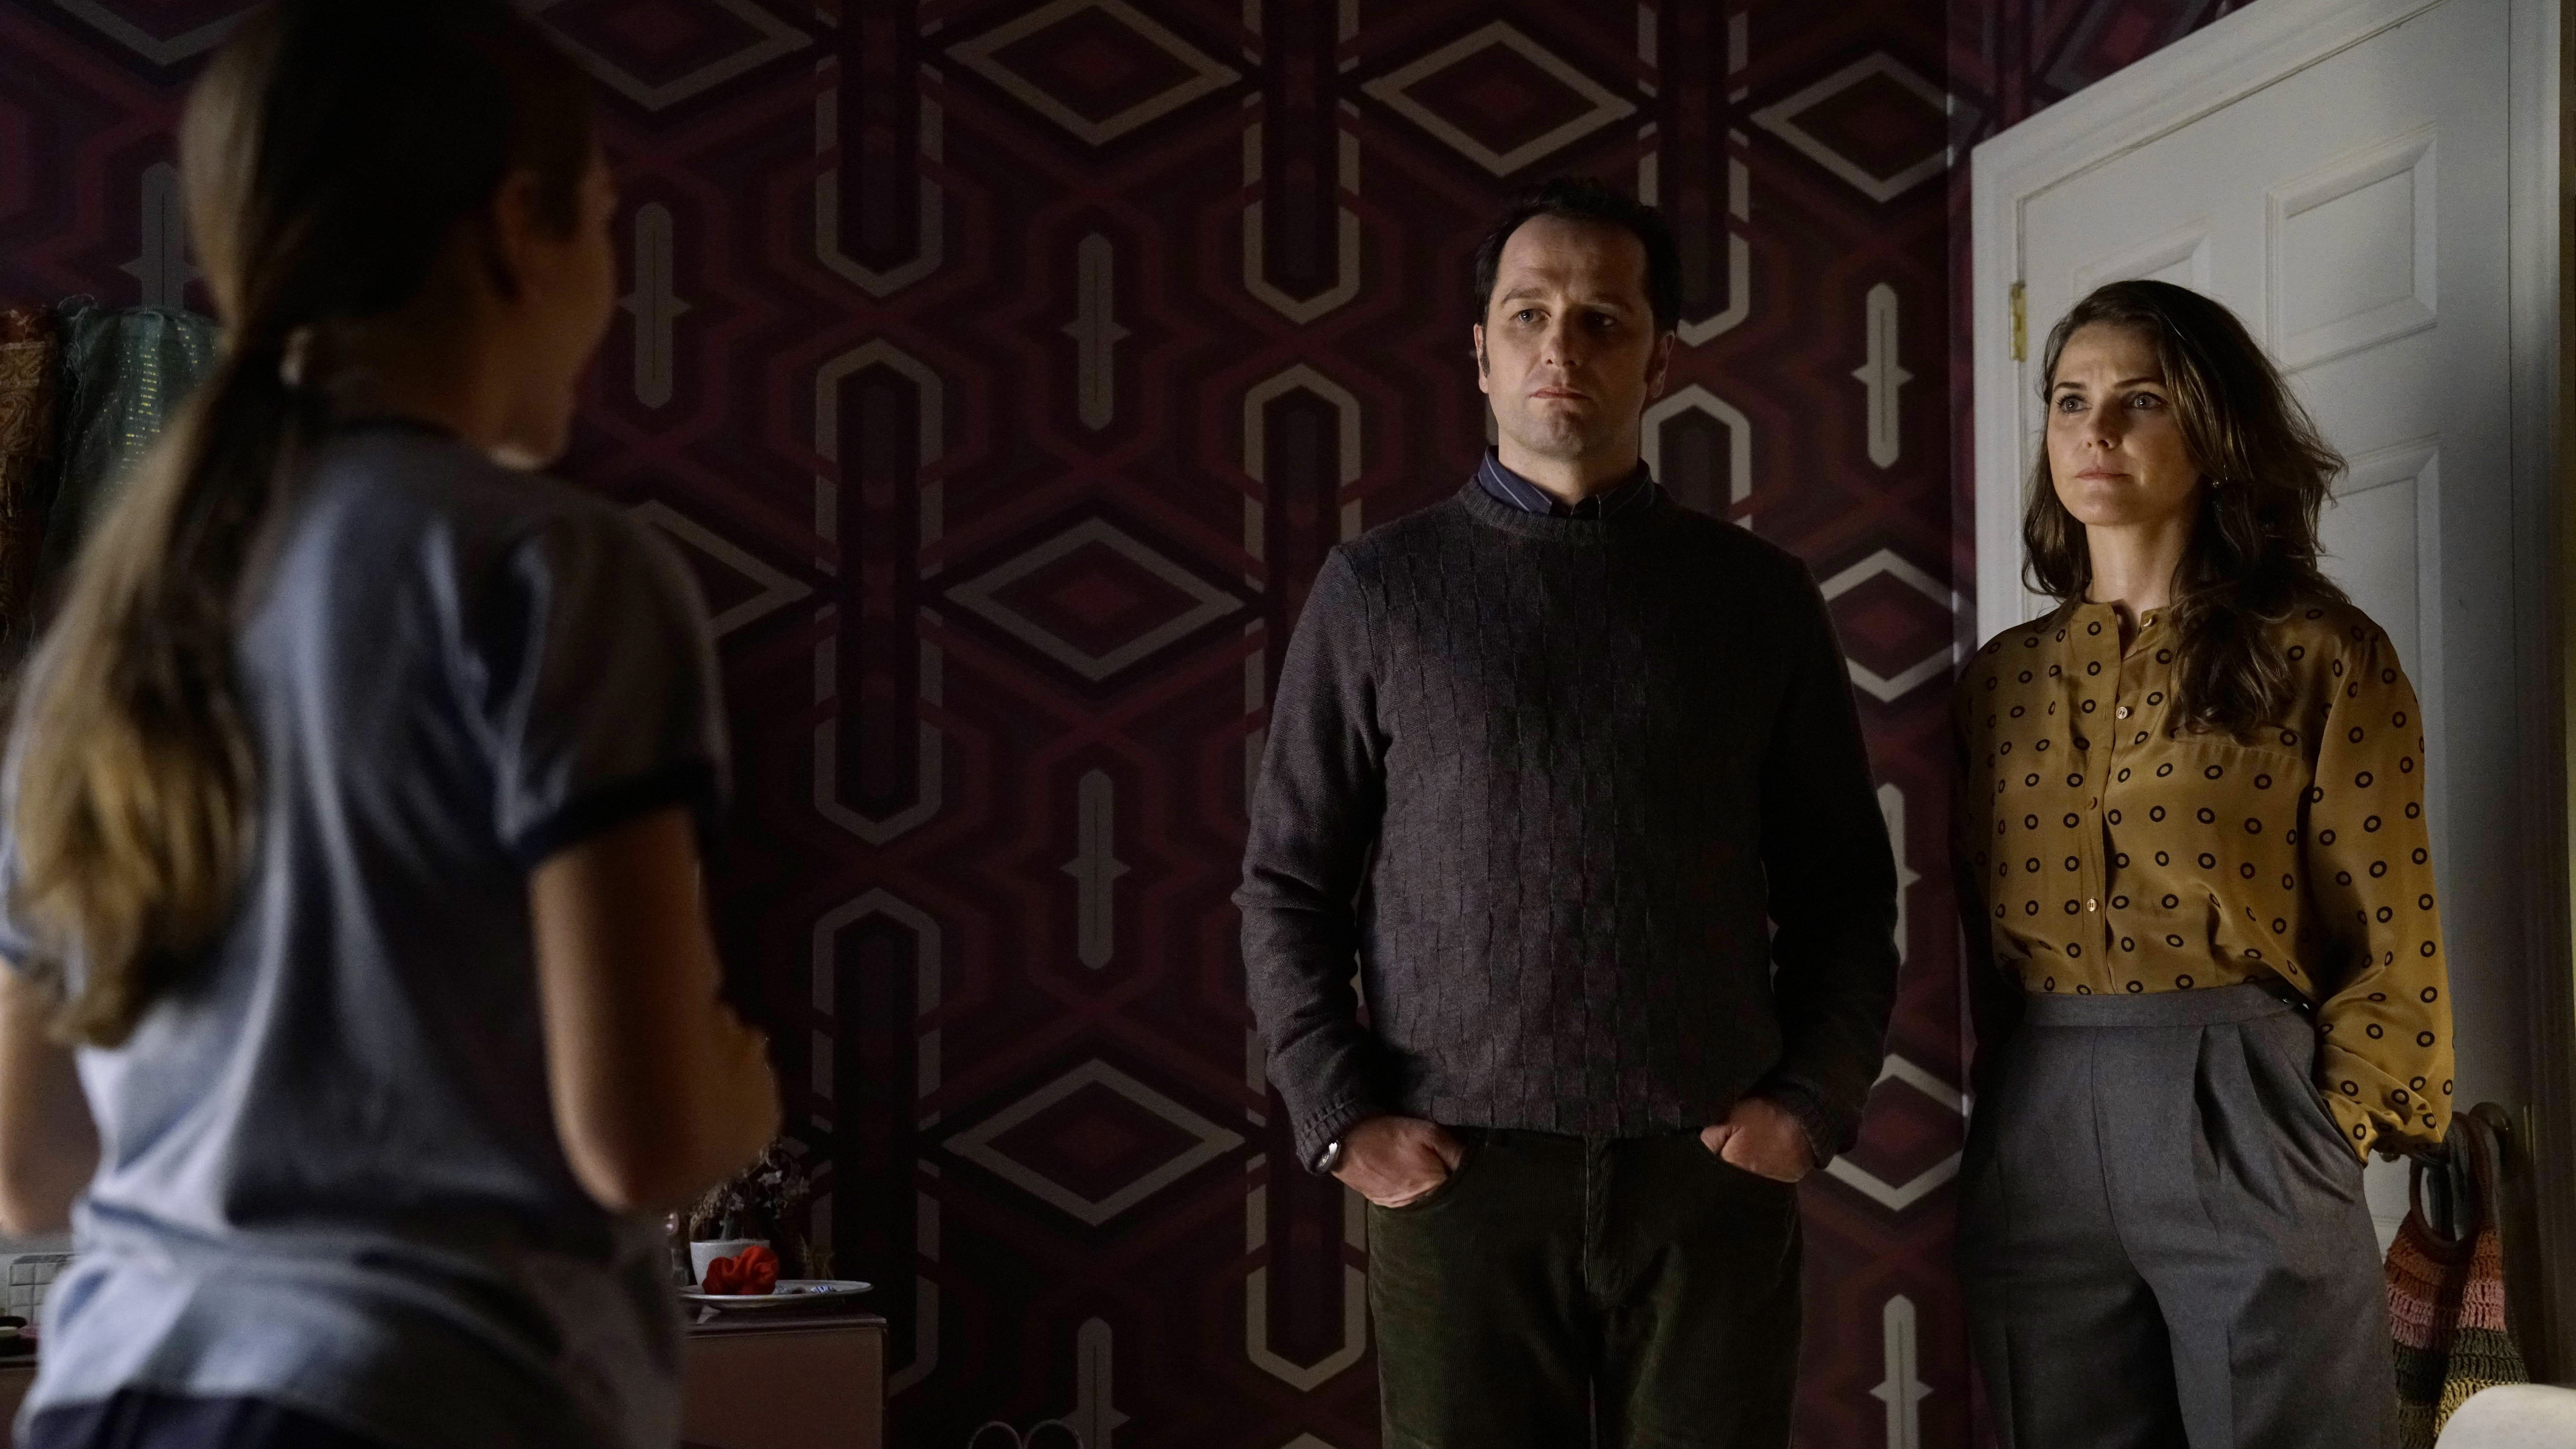 """THE AMERICANS -- """"Amber Waves"""" -- Season 5, Episode 1 (Airs Tuesday, March 7, 10:00 pm/ep) --  Pictured: (l-r) Holly Taylor as Paige Jennings, Matthew Rhys as Philip Jennings, Keri Russell as Elizabeth Jennings. CR: Patrick Harbron/FX"""